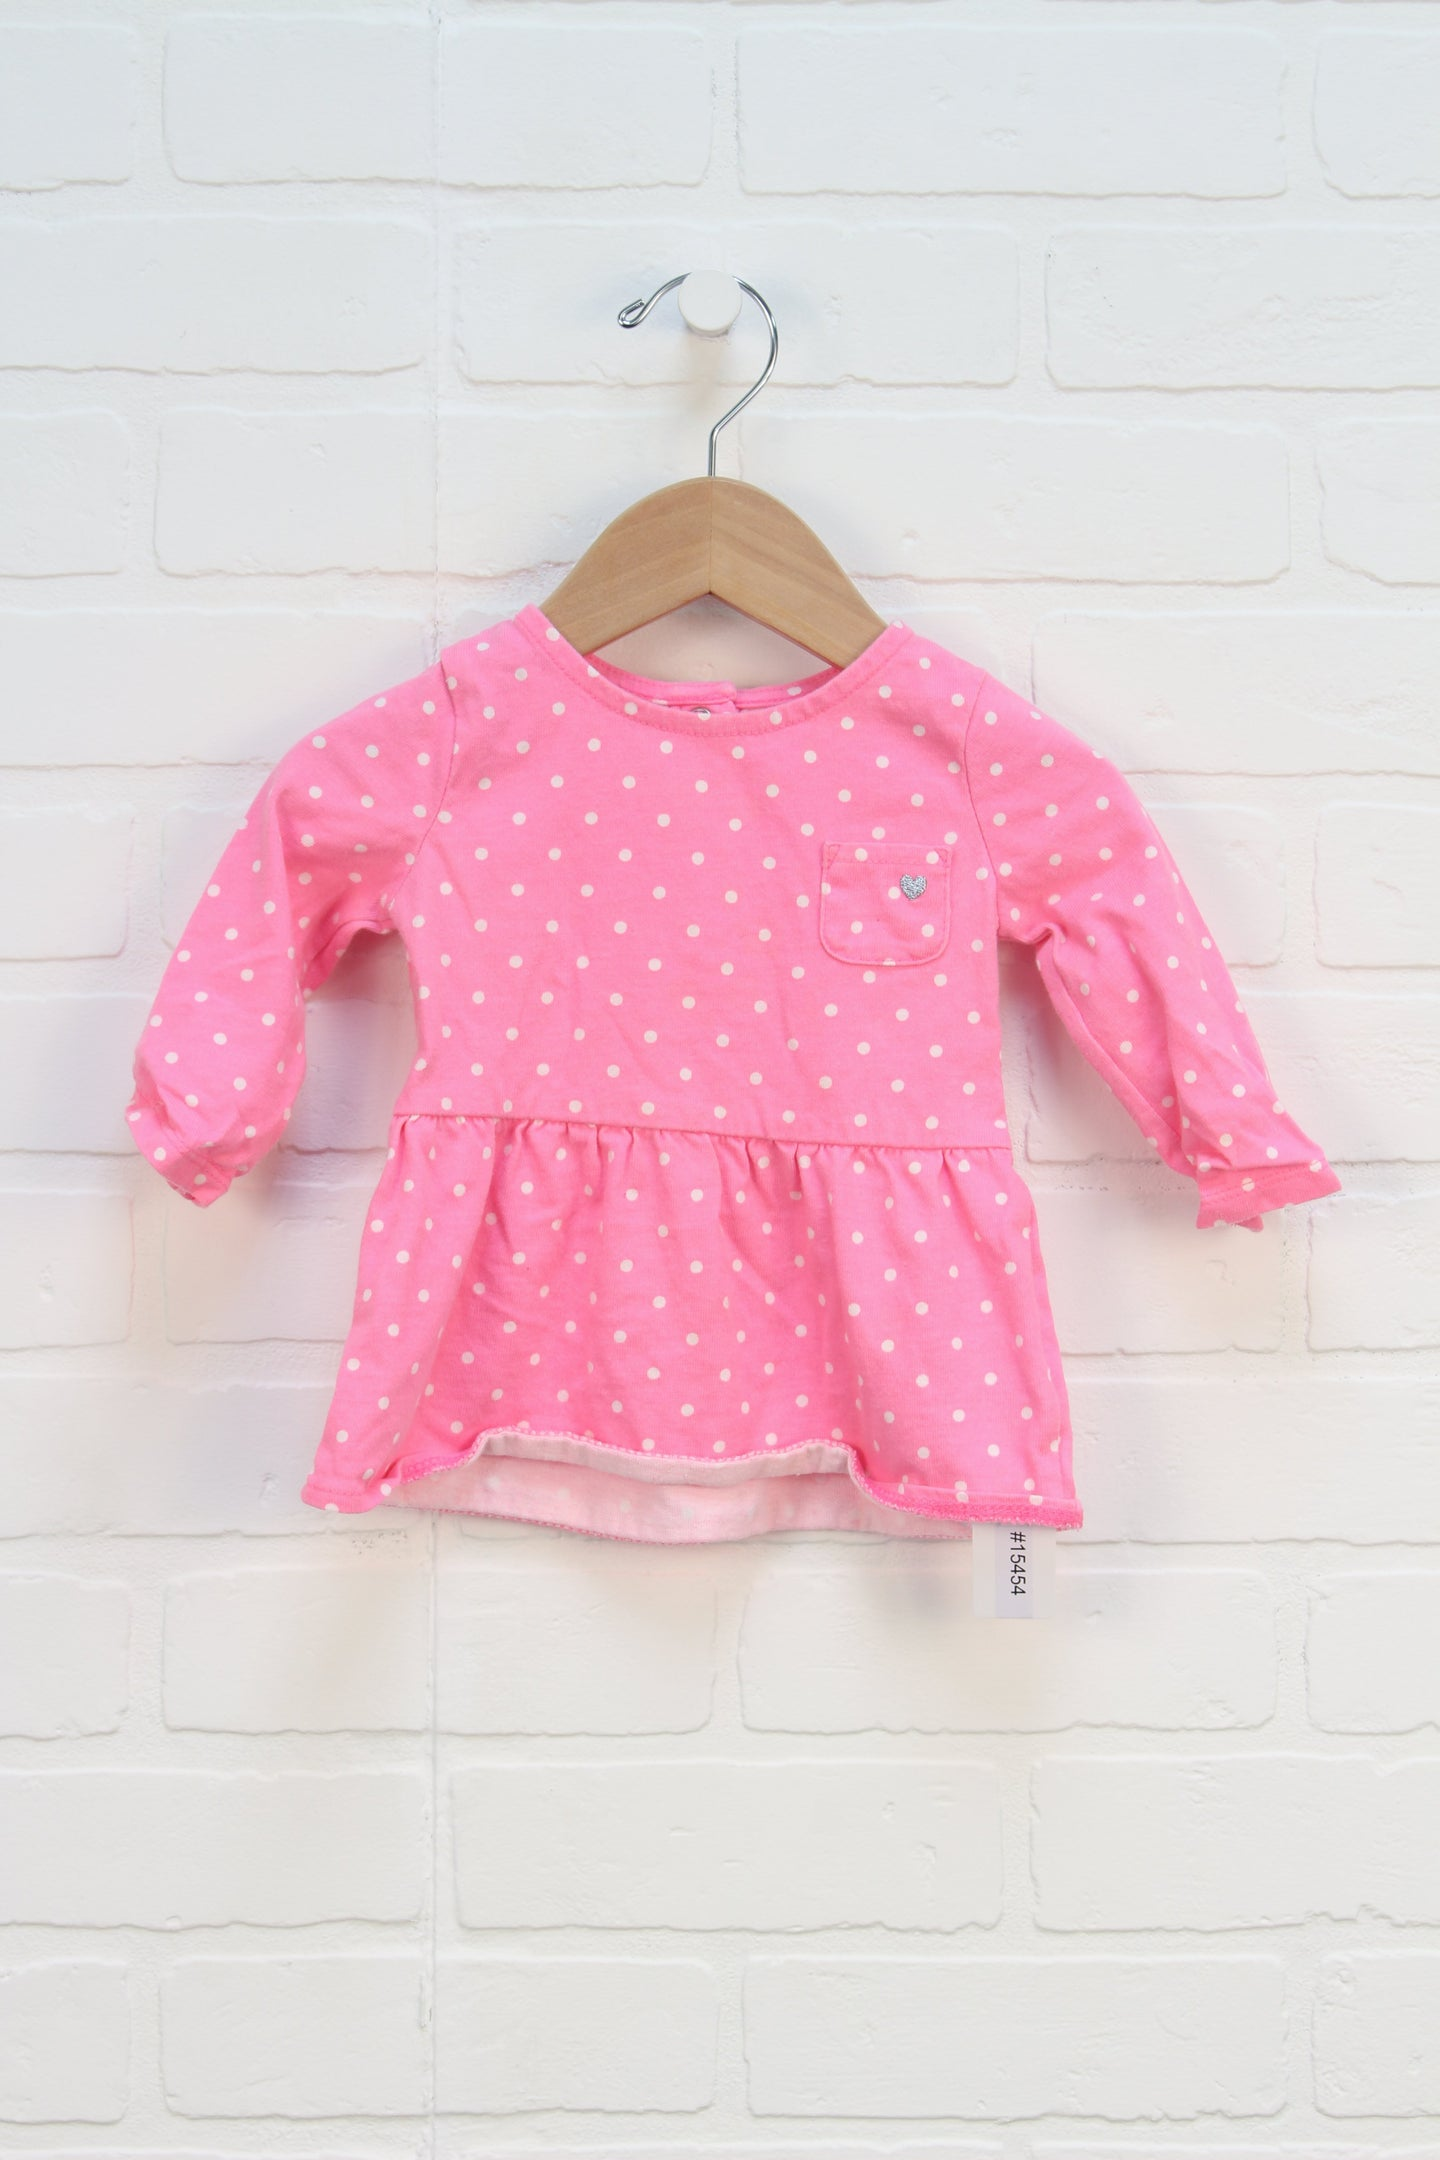 Pink + White Polka Dot Top (Carter's Size 9M)